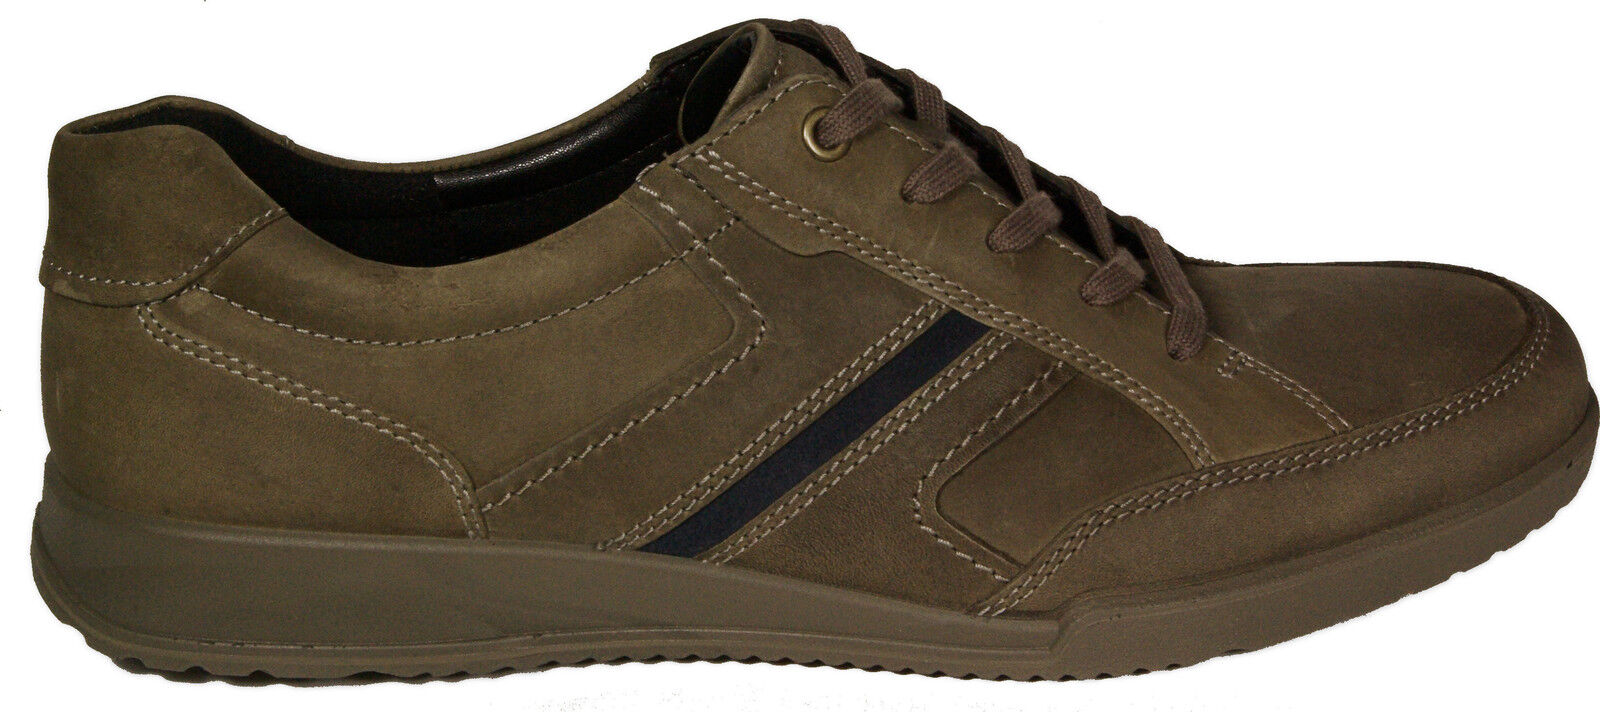 NEW ECCO Shoes Casual lace ups model TRANSPORTER lace up Grey oiled leather